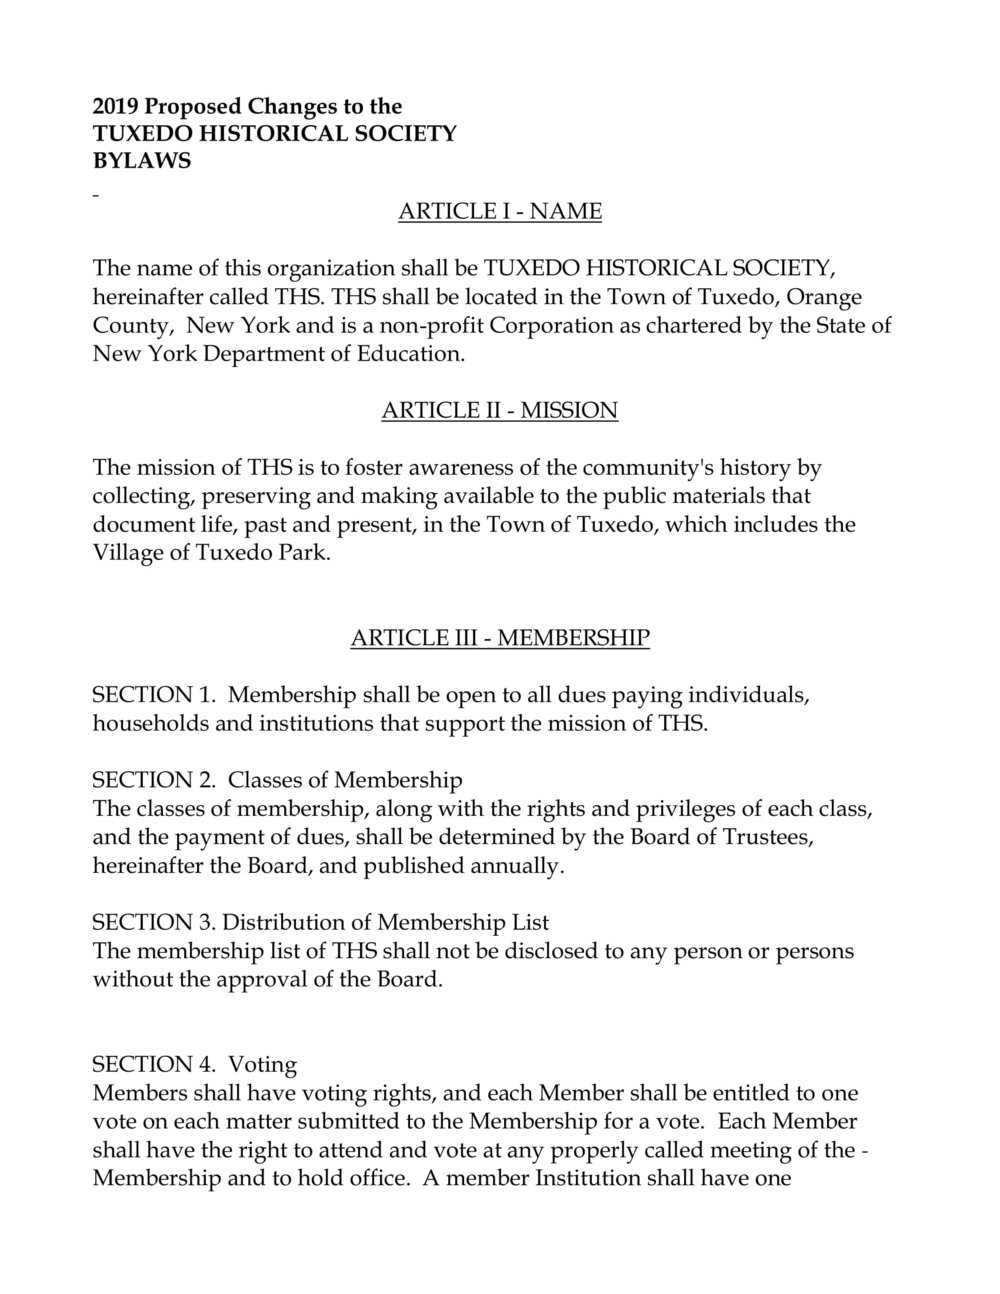 Proposed_ BYLAWS_changes2019-1.jpg